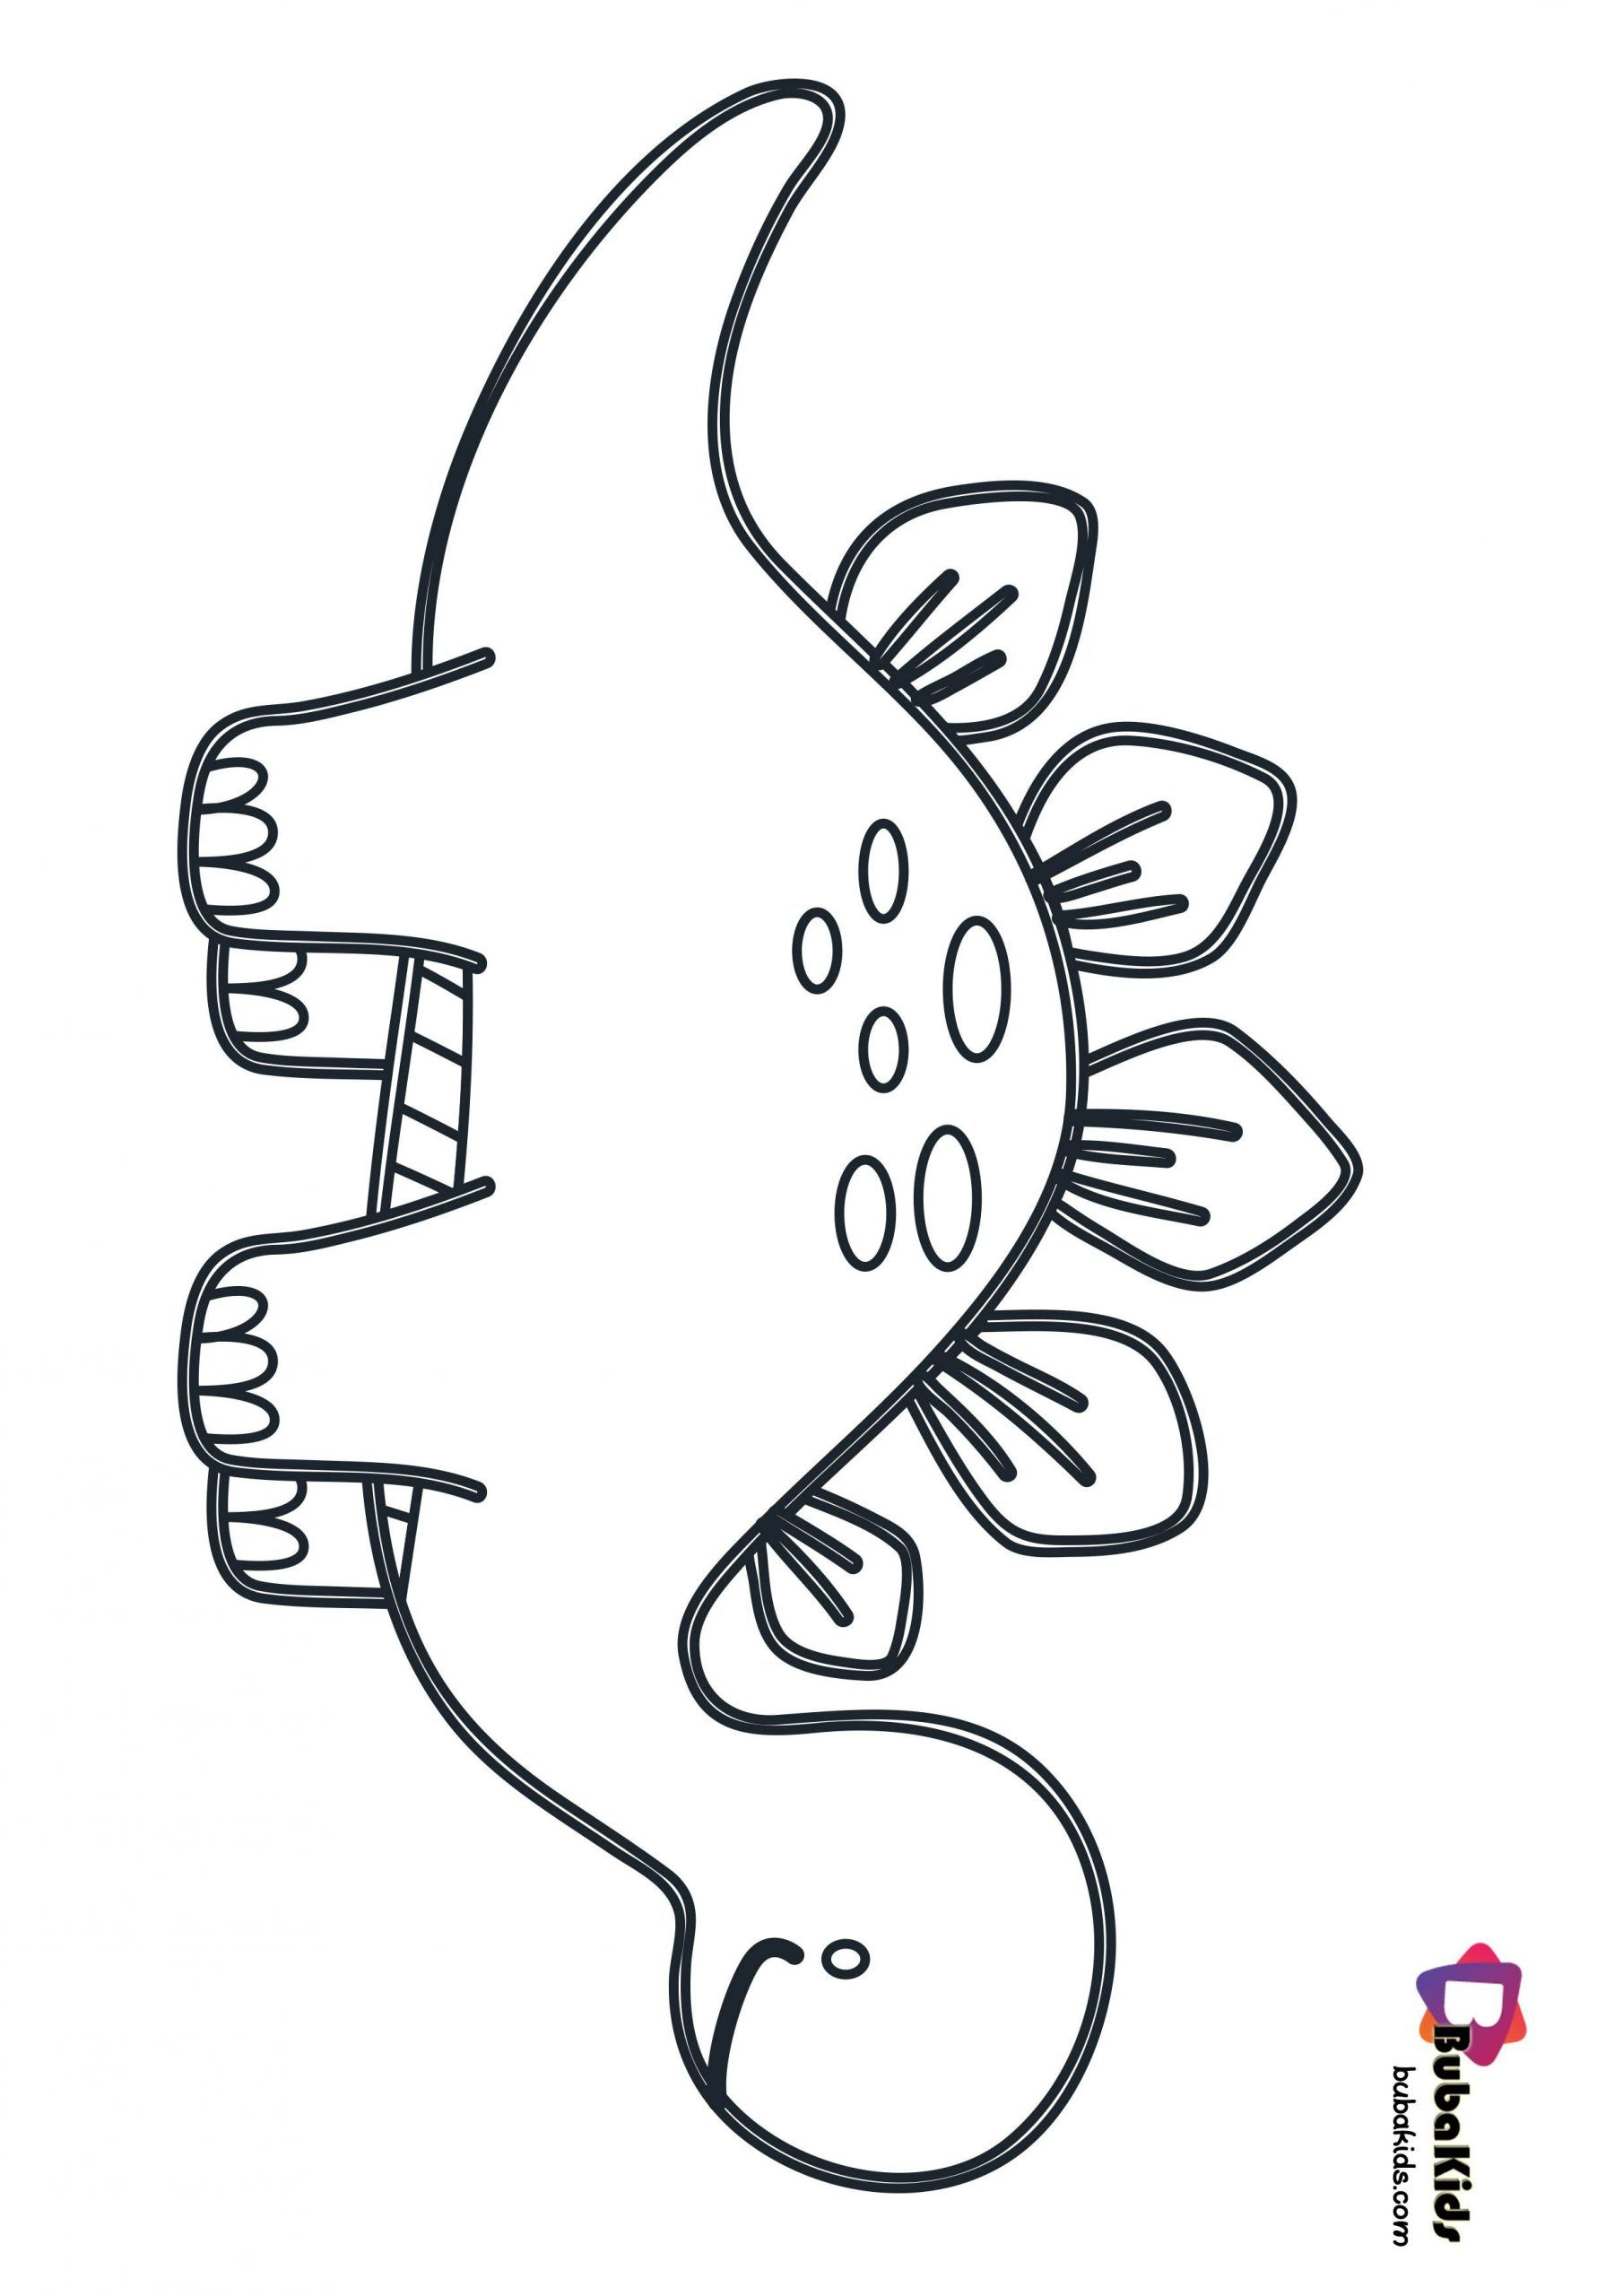 Cute Baby Dinosaurs Coloring Page For Kids Onesies Dinosaur Coloring Pages Cute Coloring Pages Dinosaur Coloring